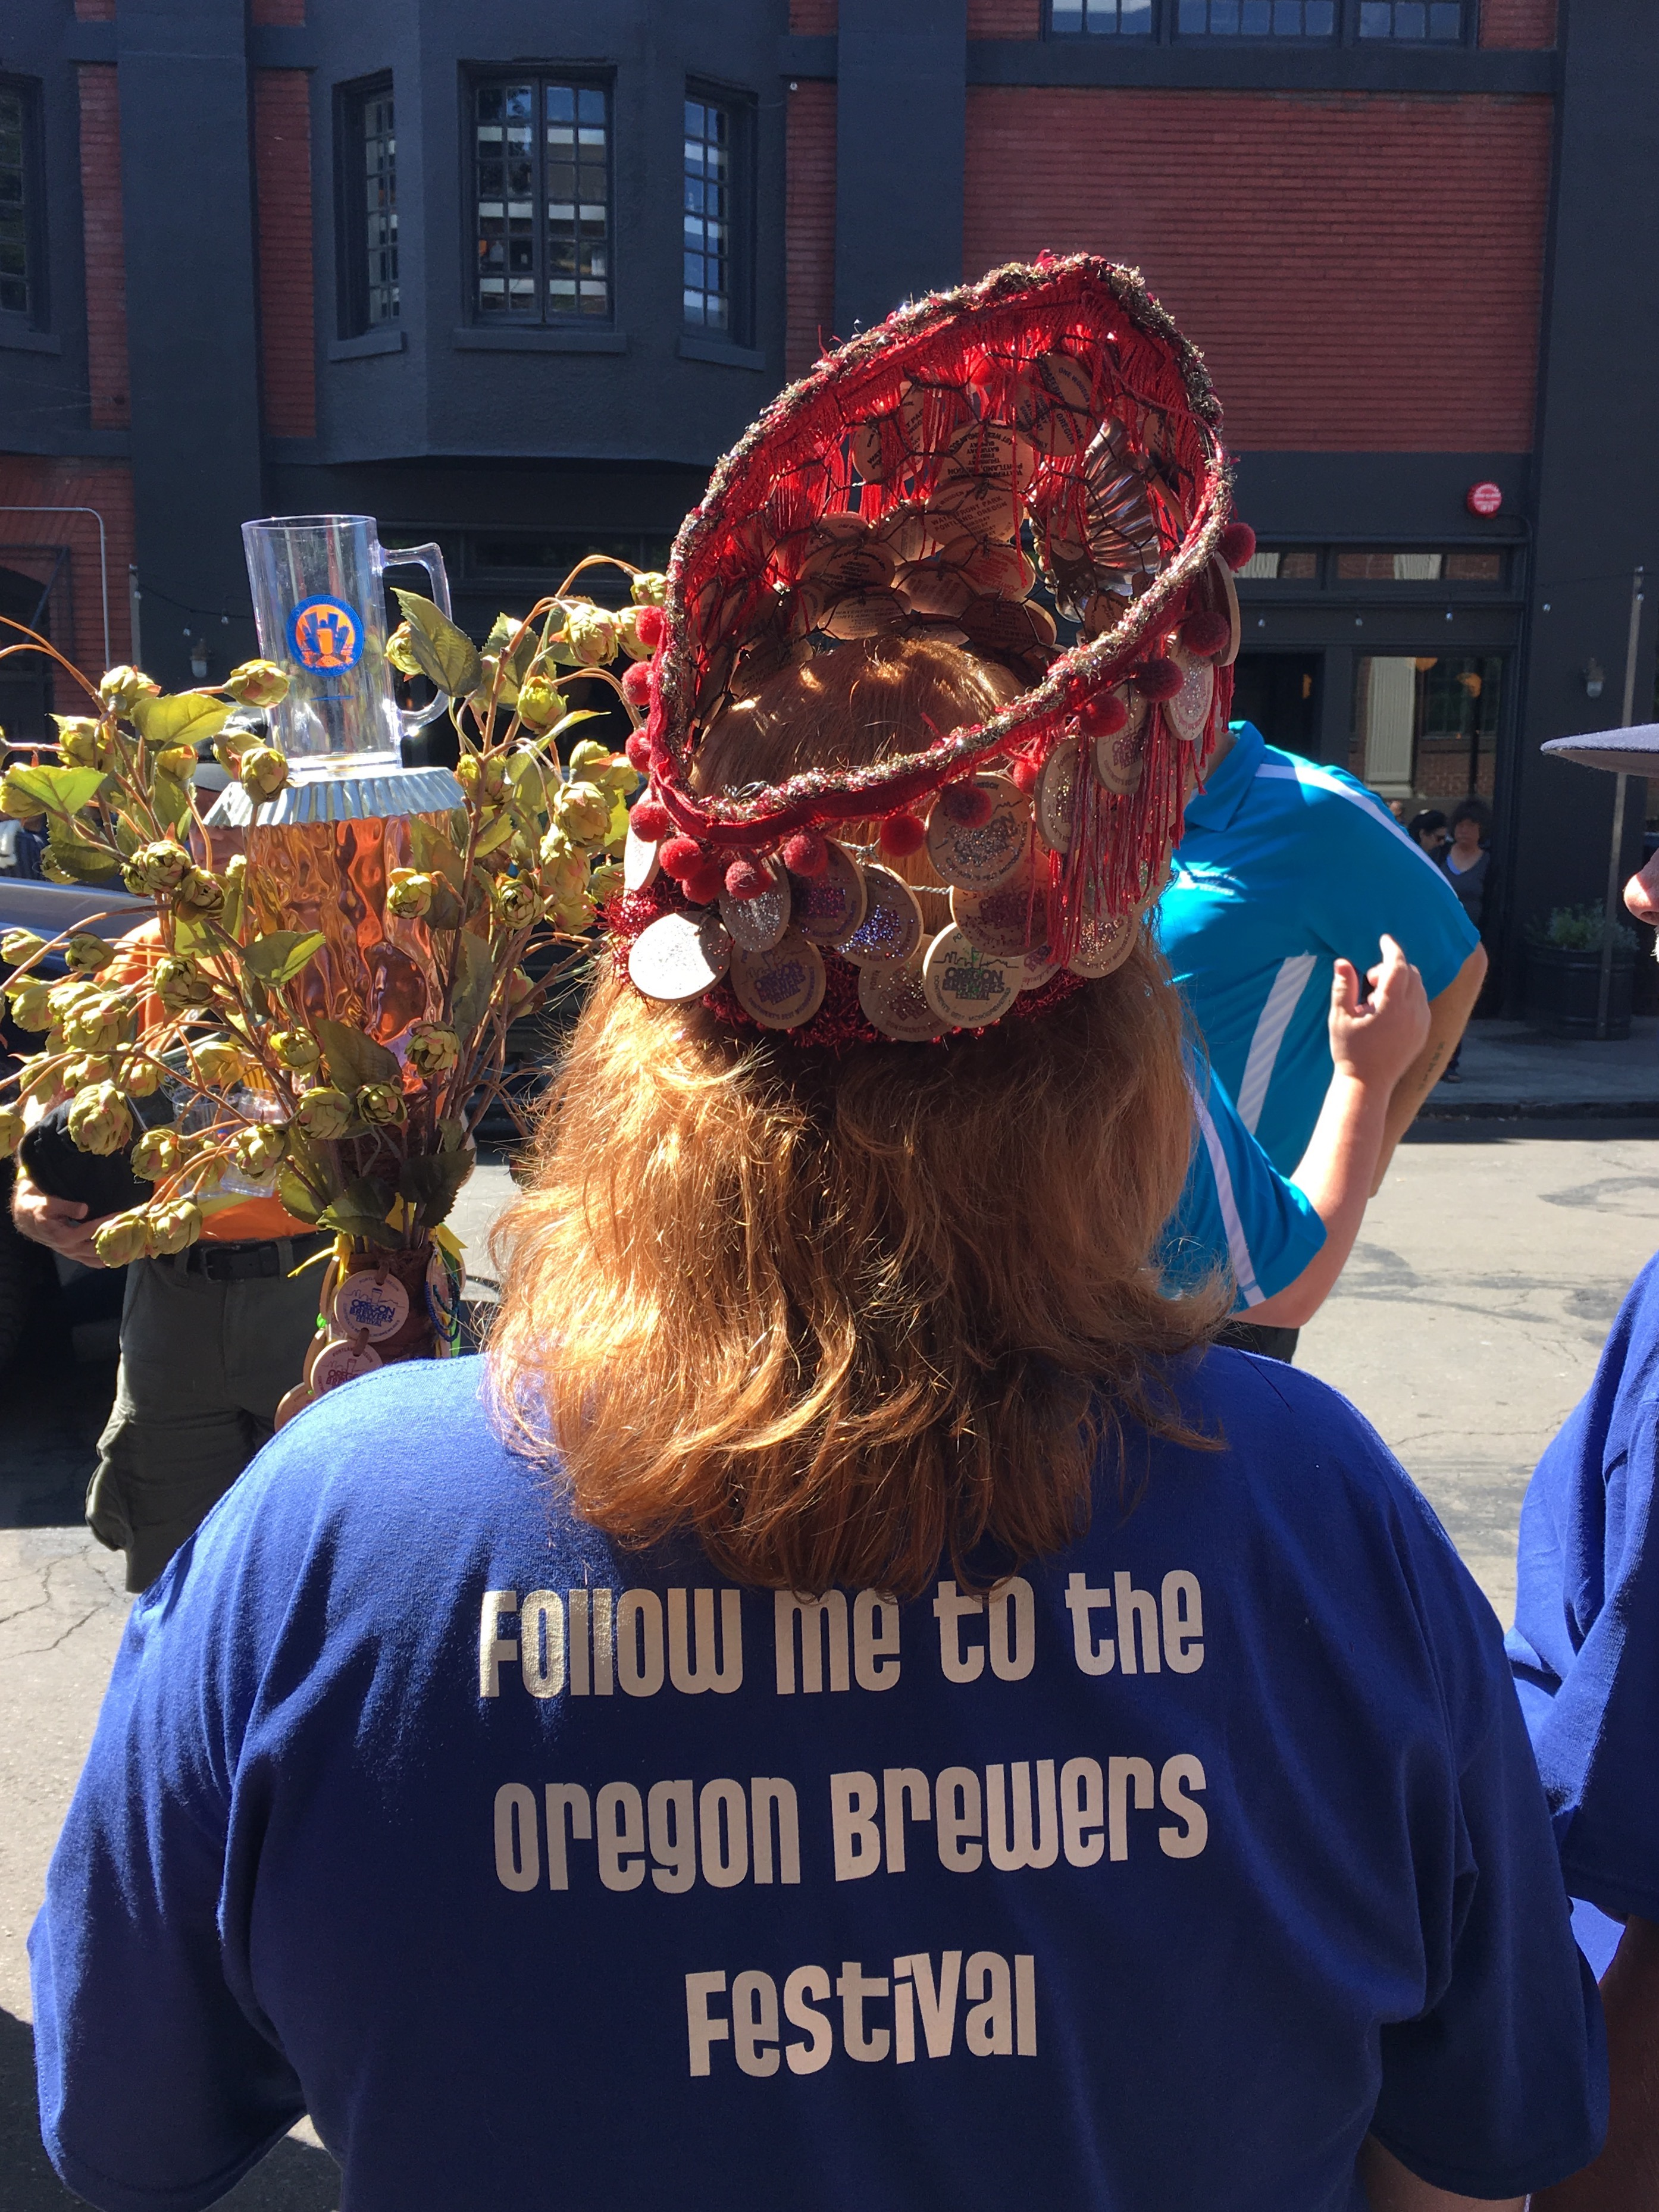 Lisa Morrison is set to lead the 2016 Oregon Brewers Festival Parade as its Grand Marshal.